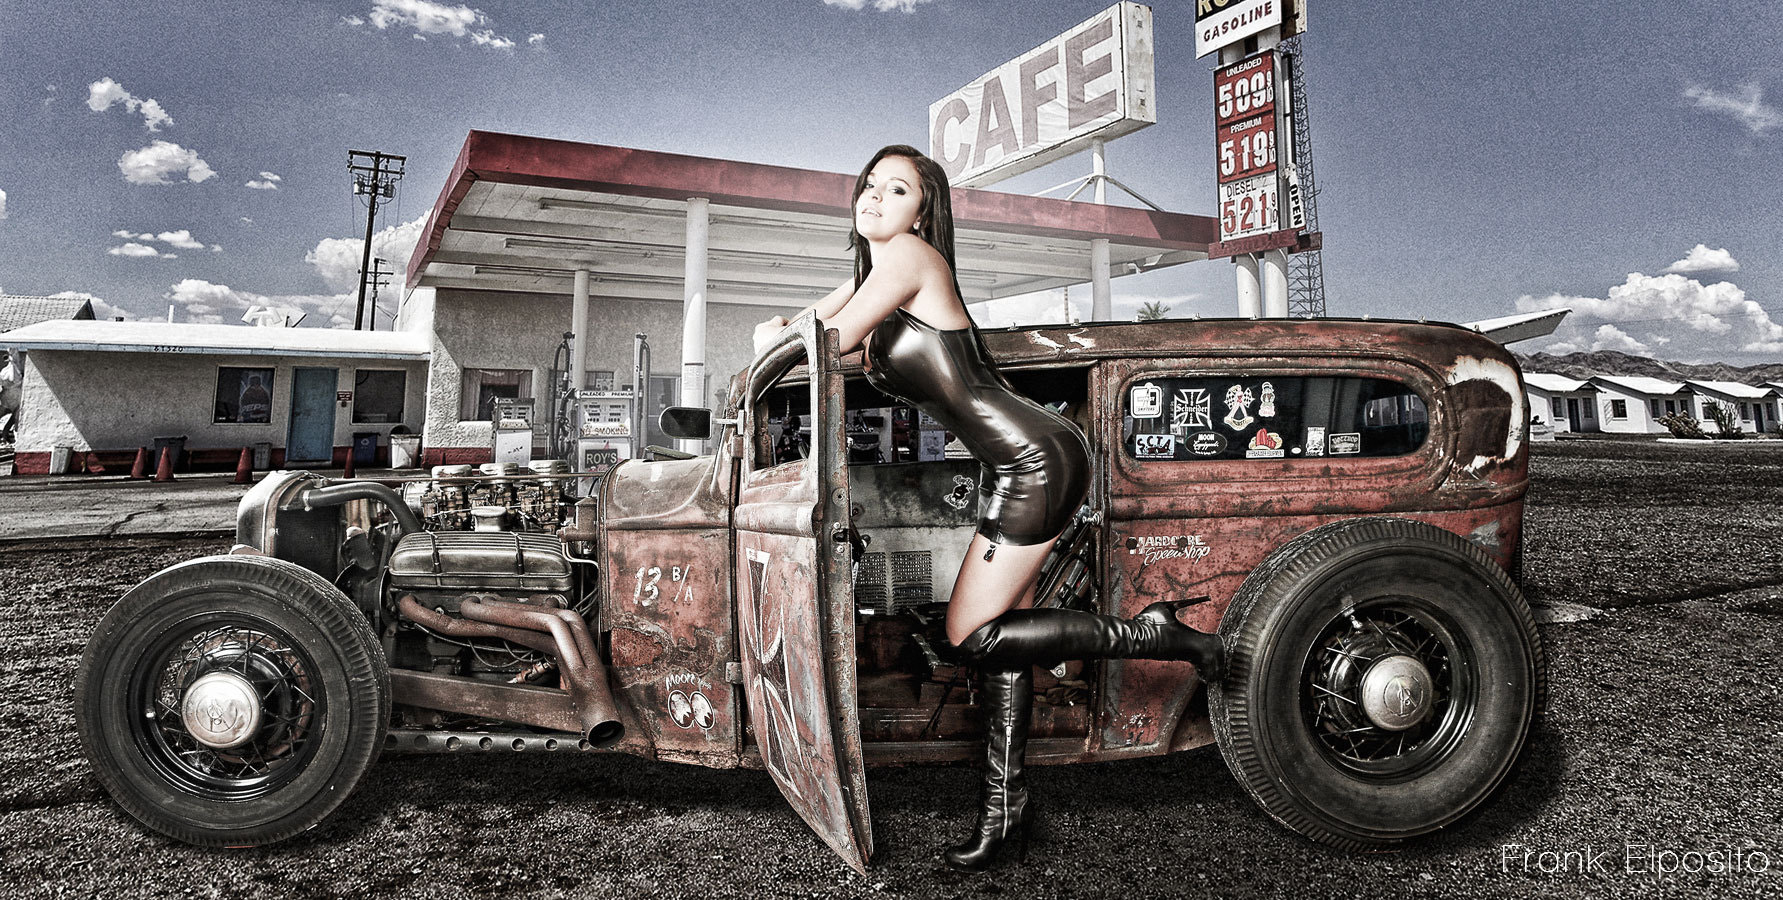 Photograph Fetish on car by frank elposito on 500px